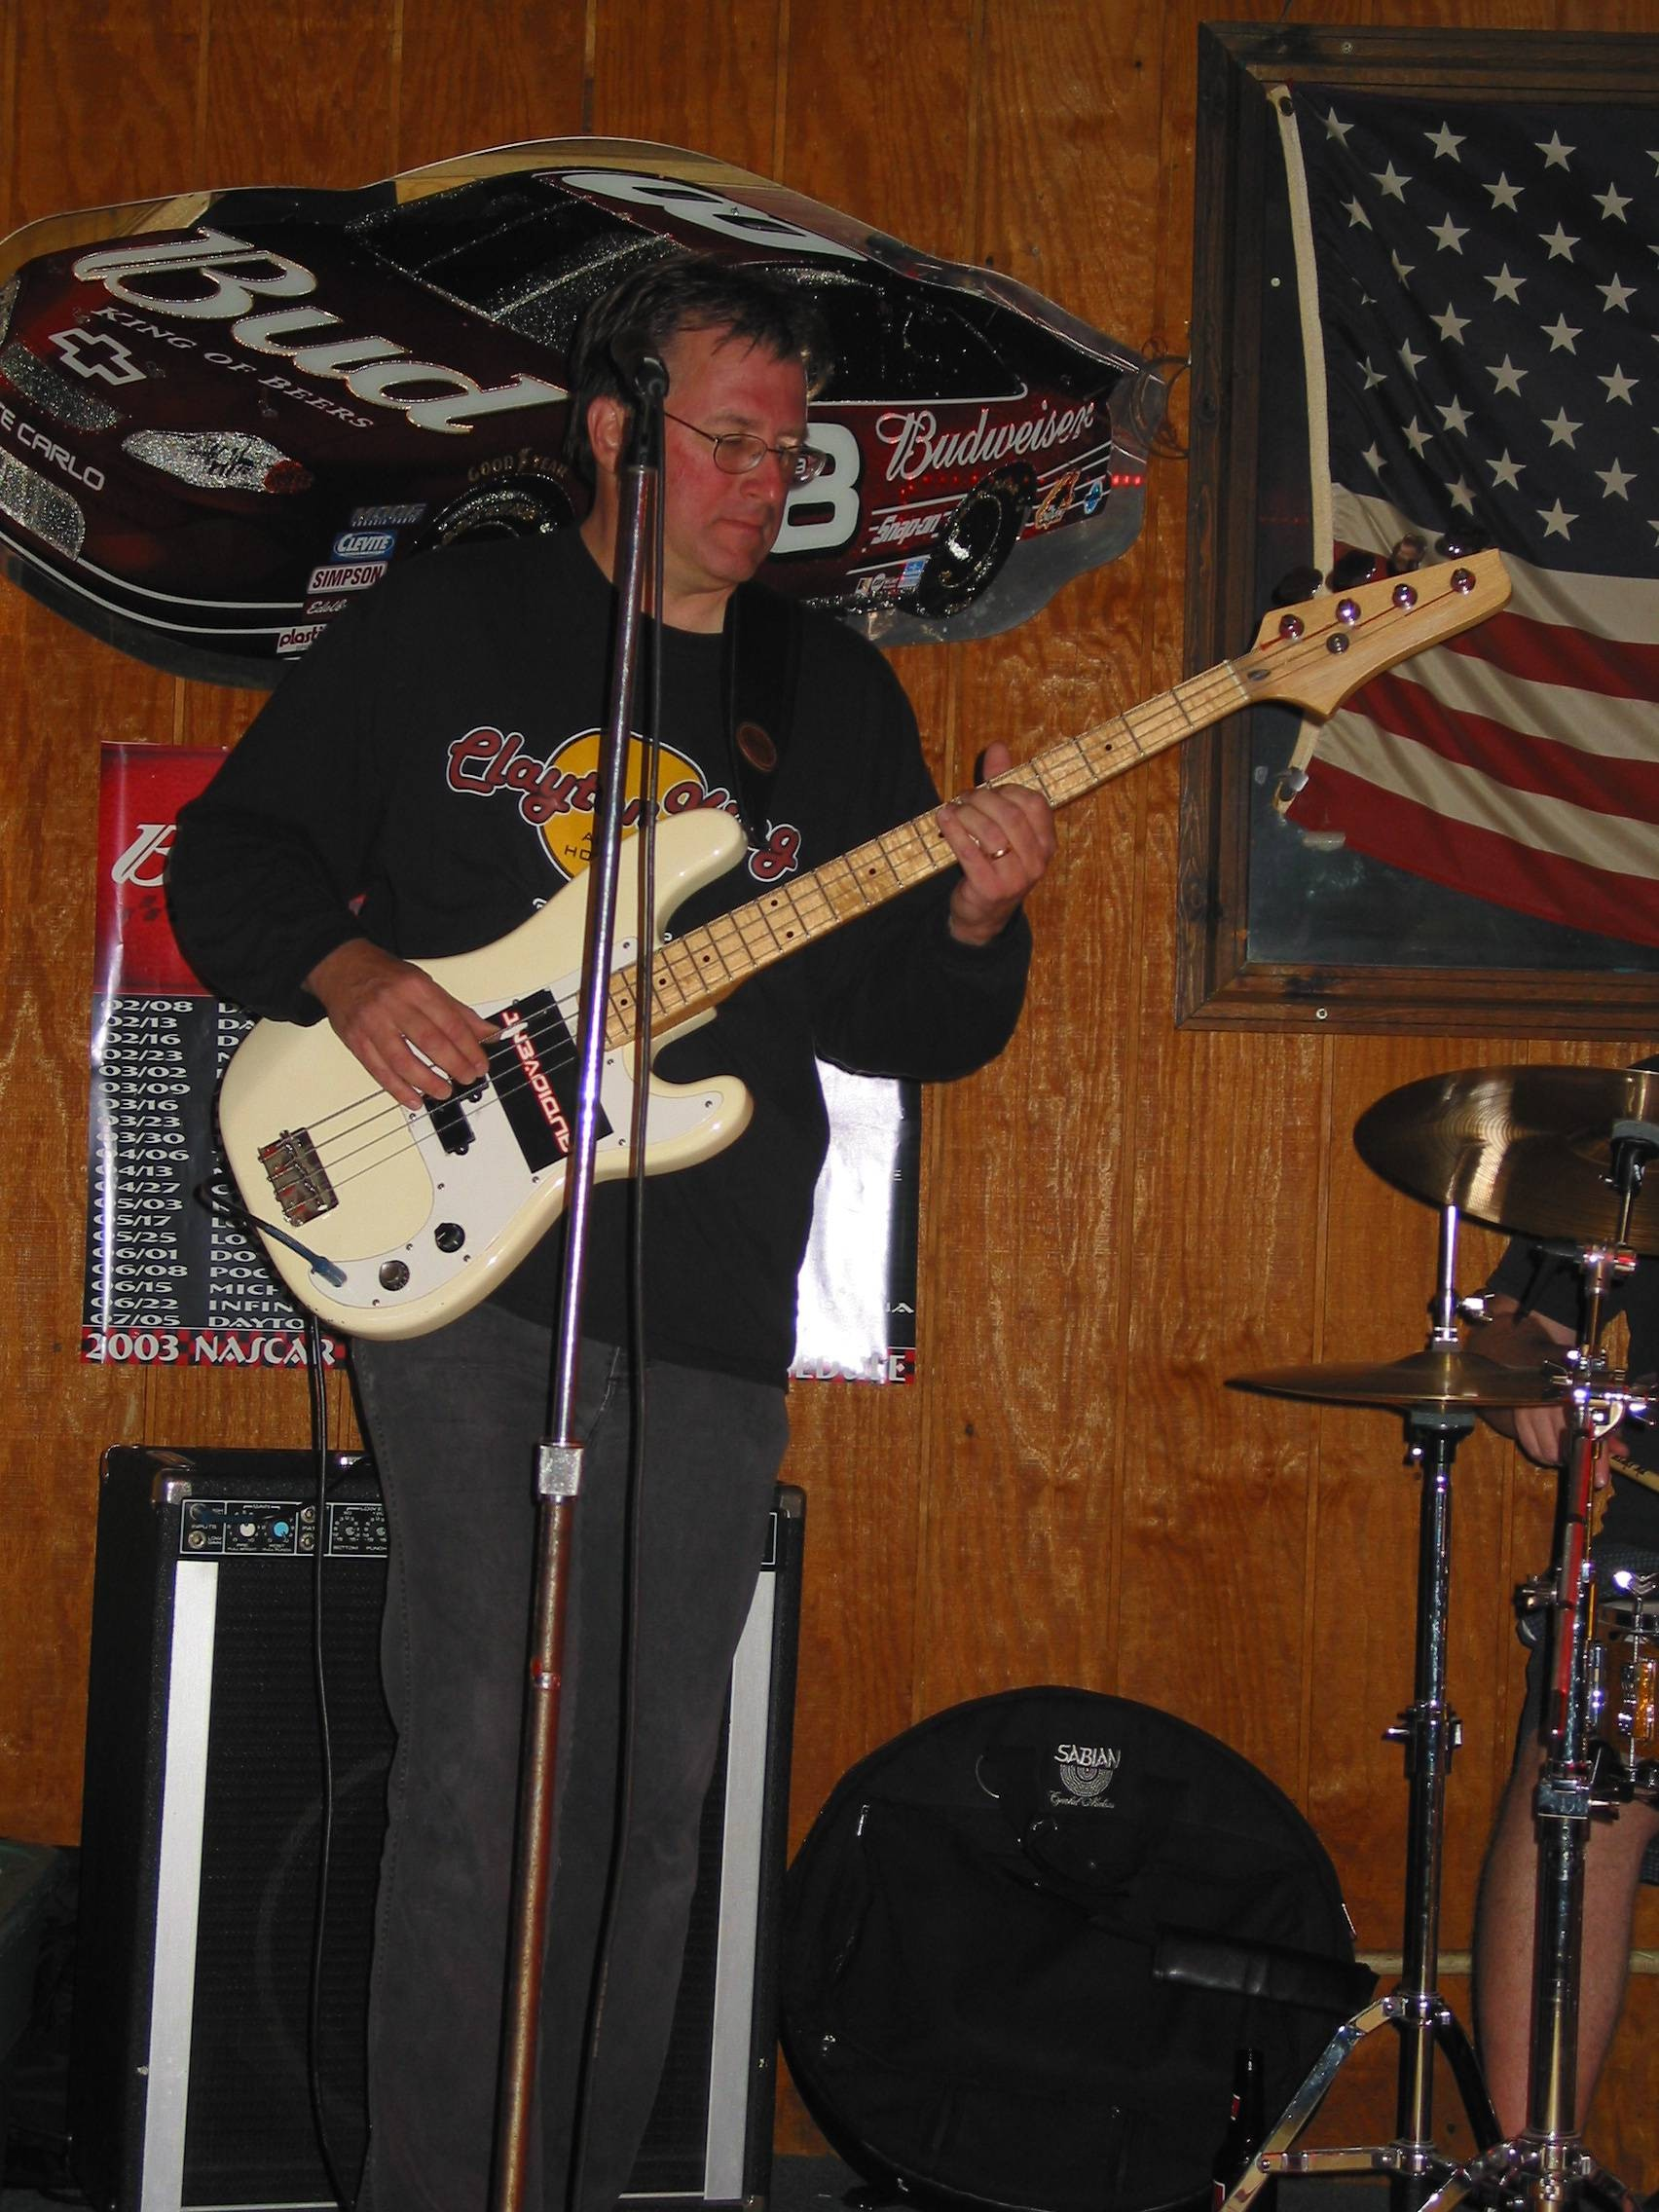 Bill on bass.jpg (583249 bytes)